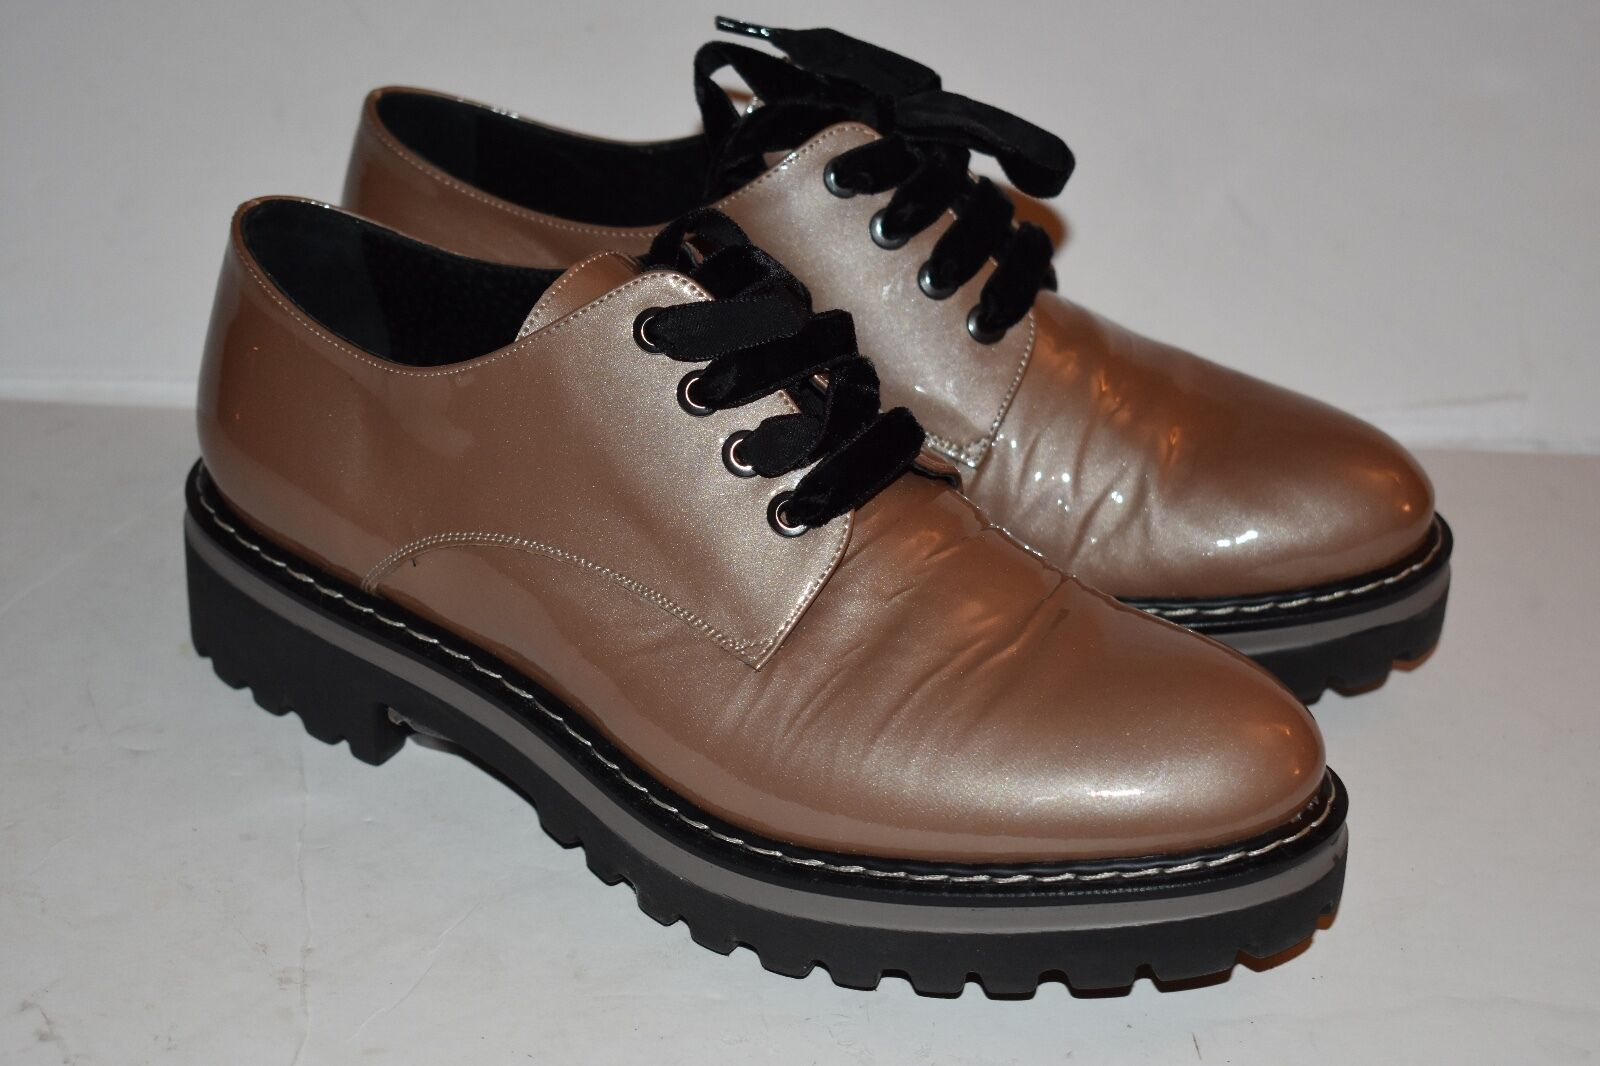 MOMENTI Lace Up OXFORD SHOES Patent Leather Size 38 velvet shoelaces